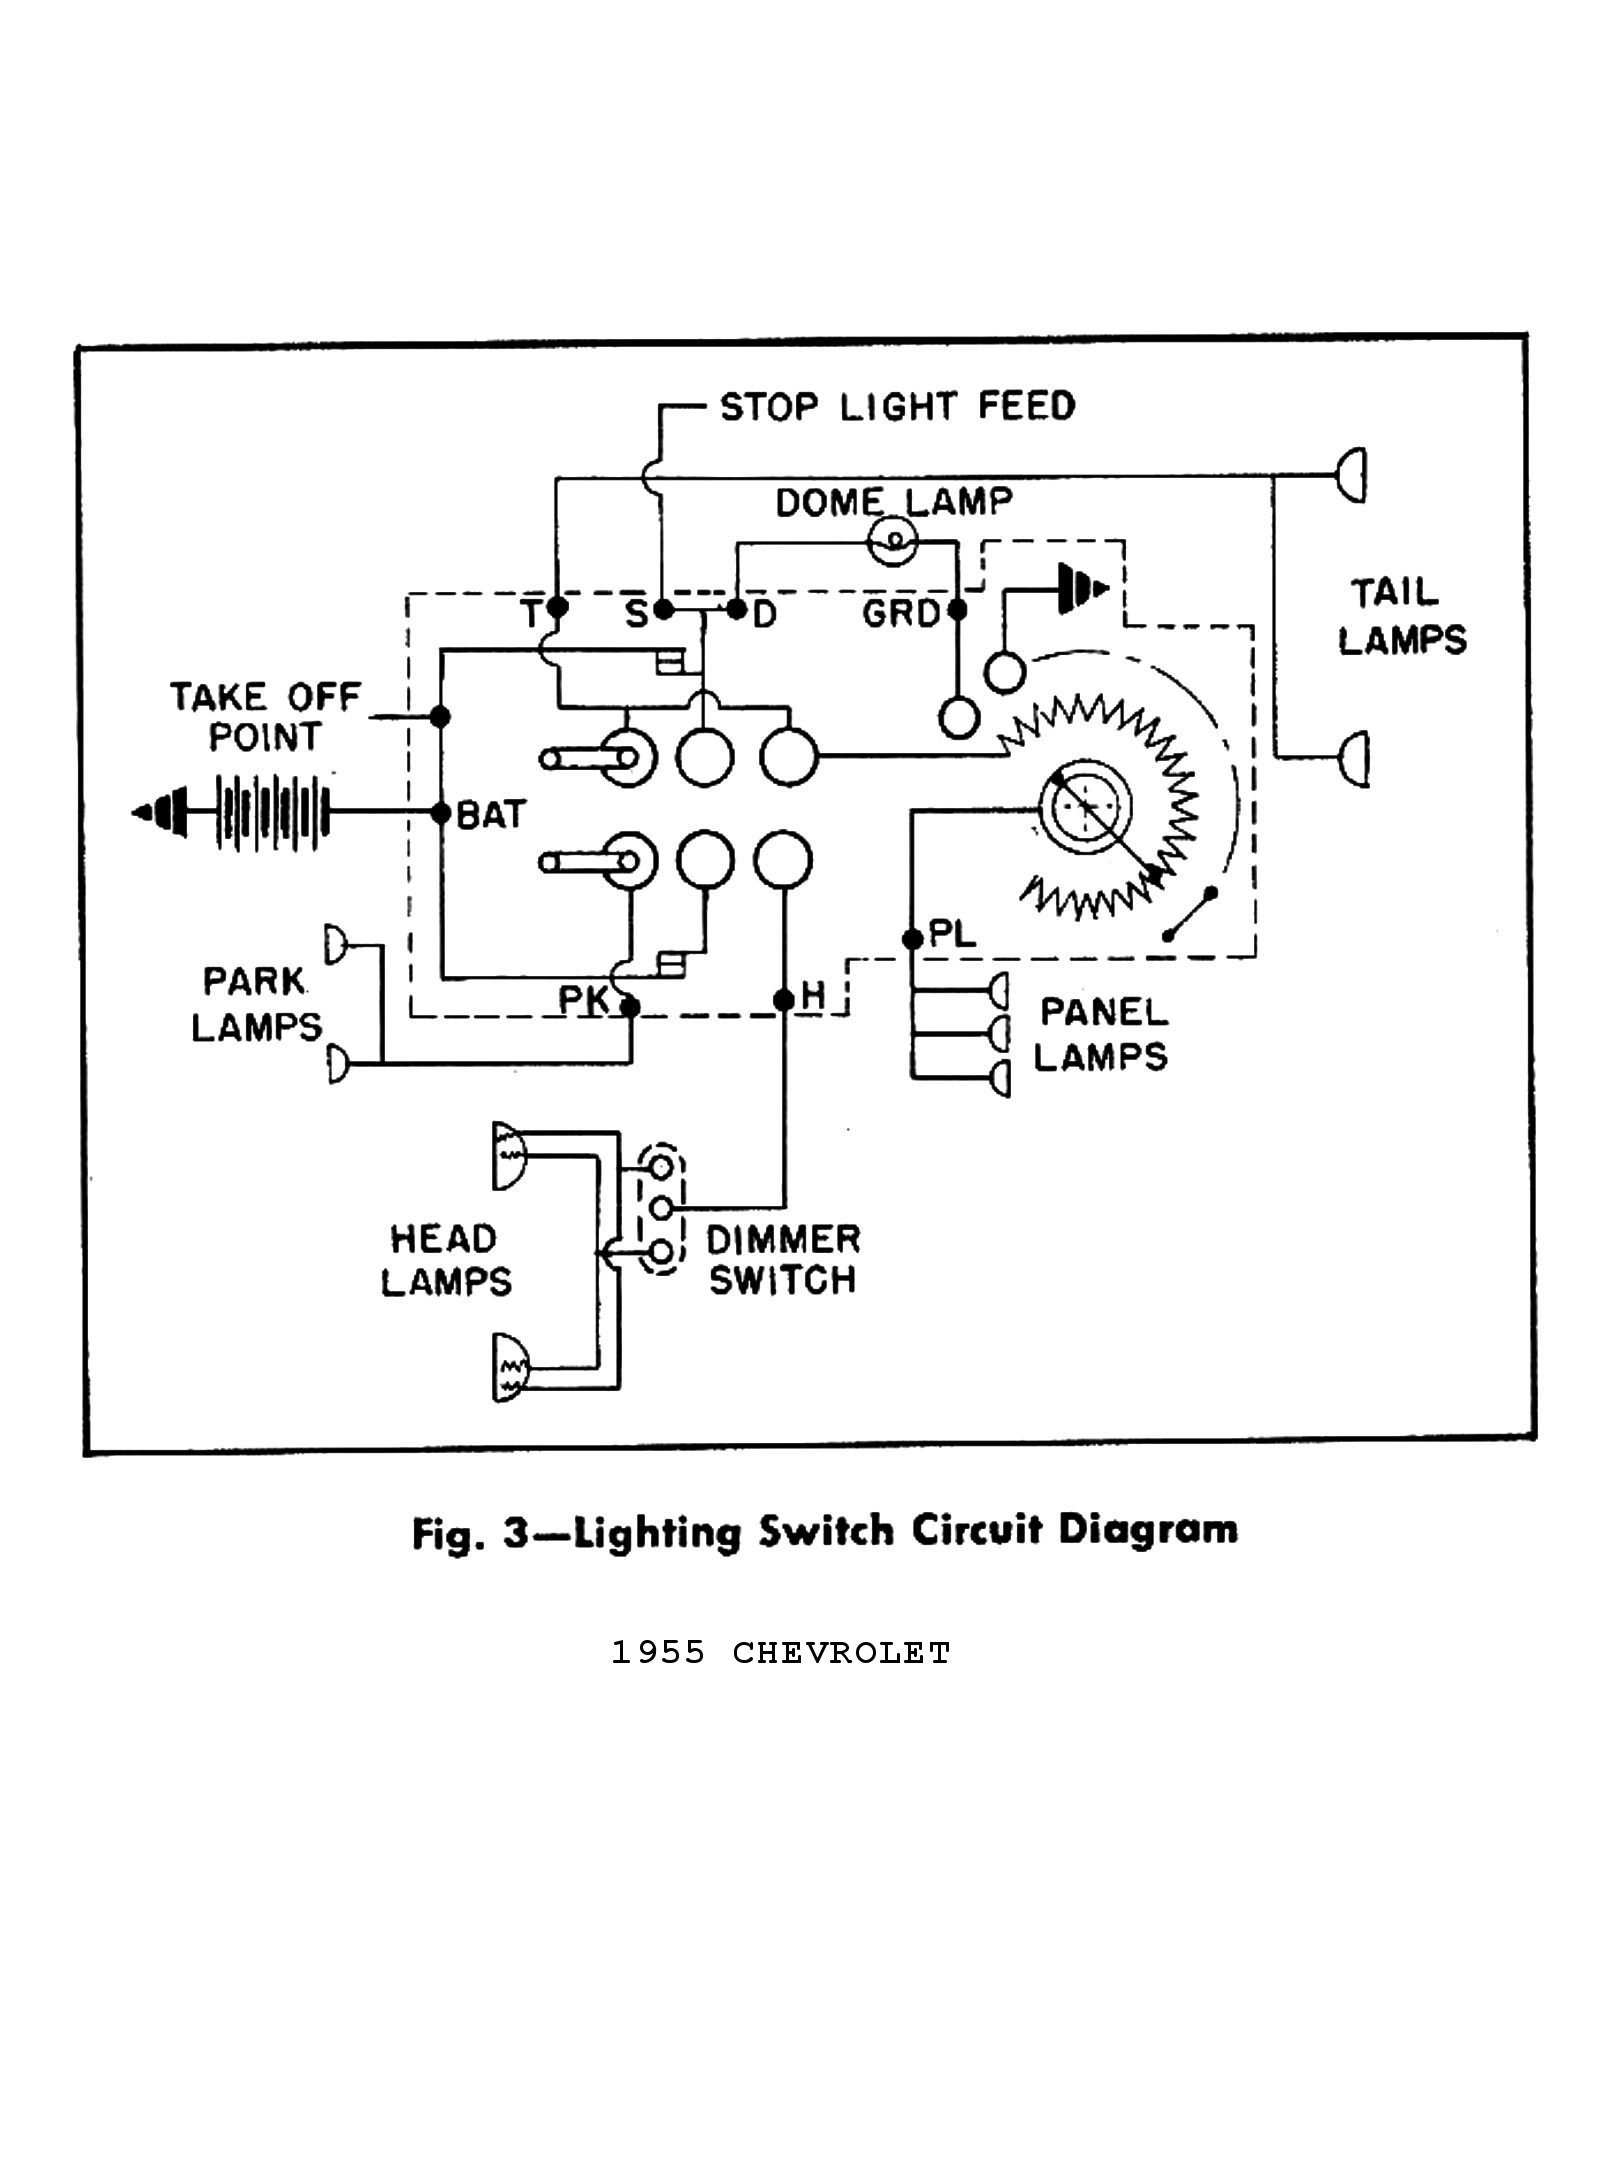 Ctsm on 1957 Chevy Headlight Wiring Diagram